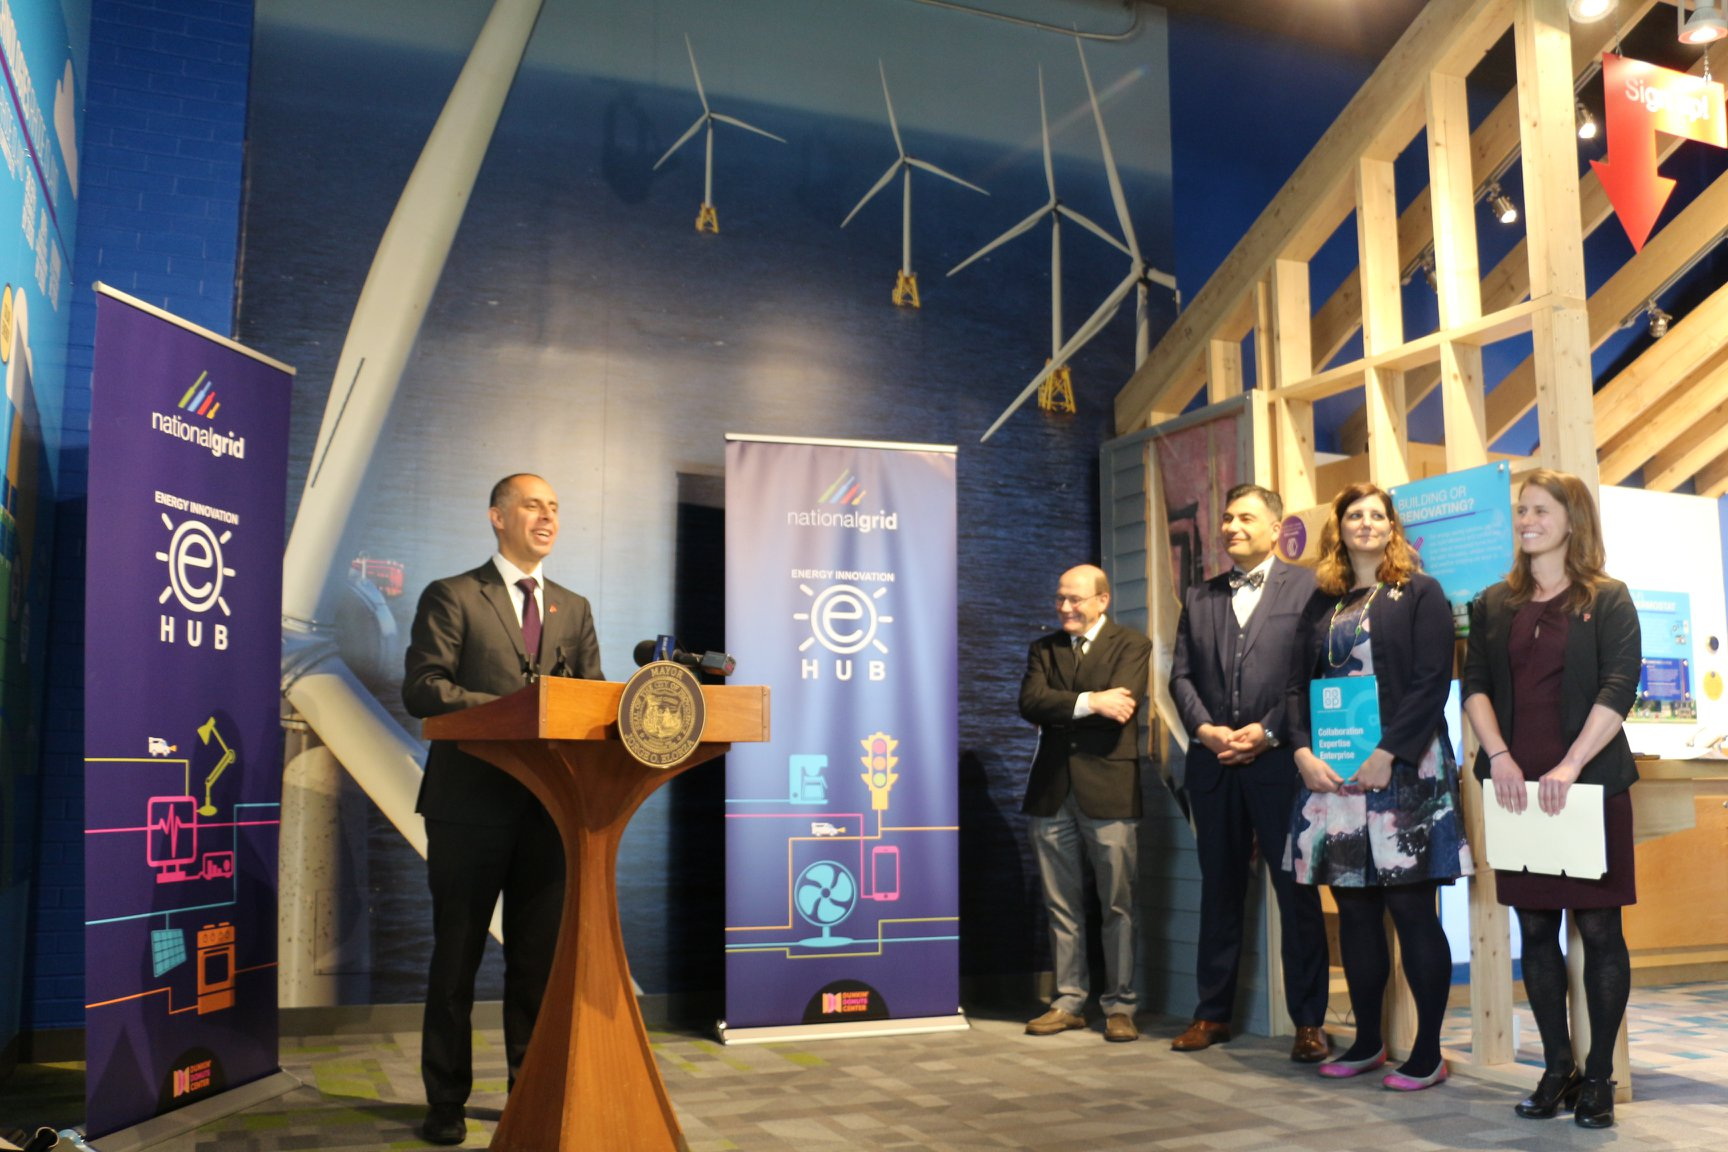 Mayor Elorza at the launch of RePowerPVD